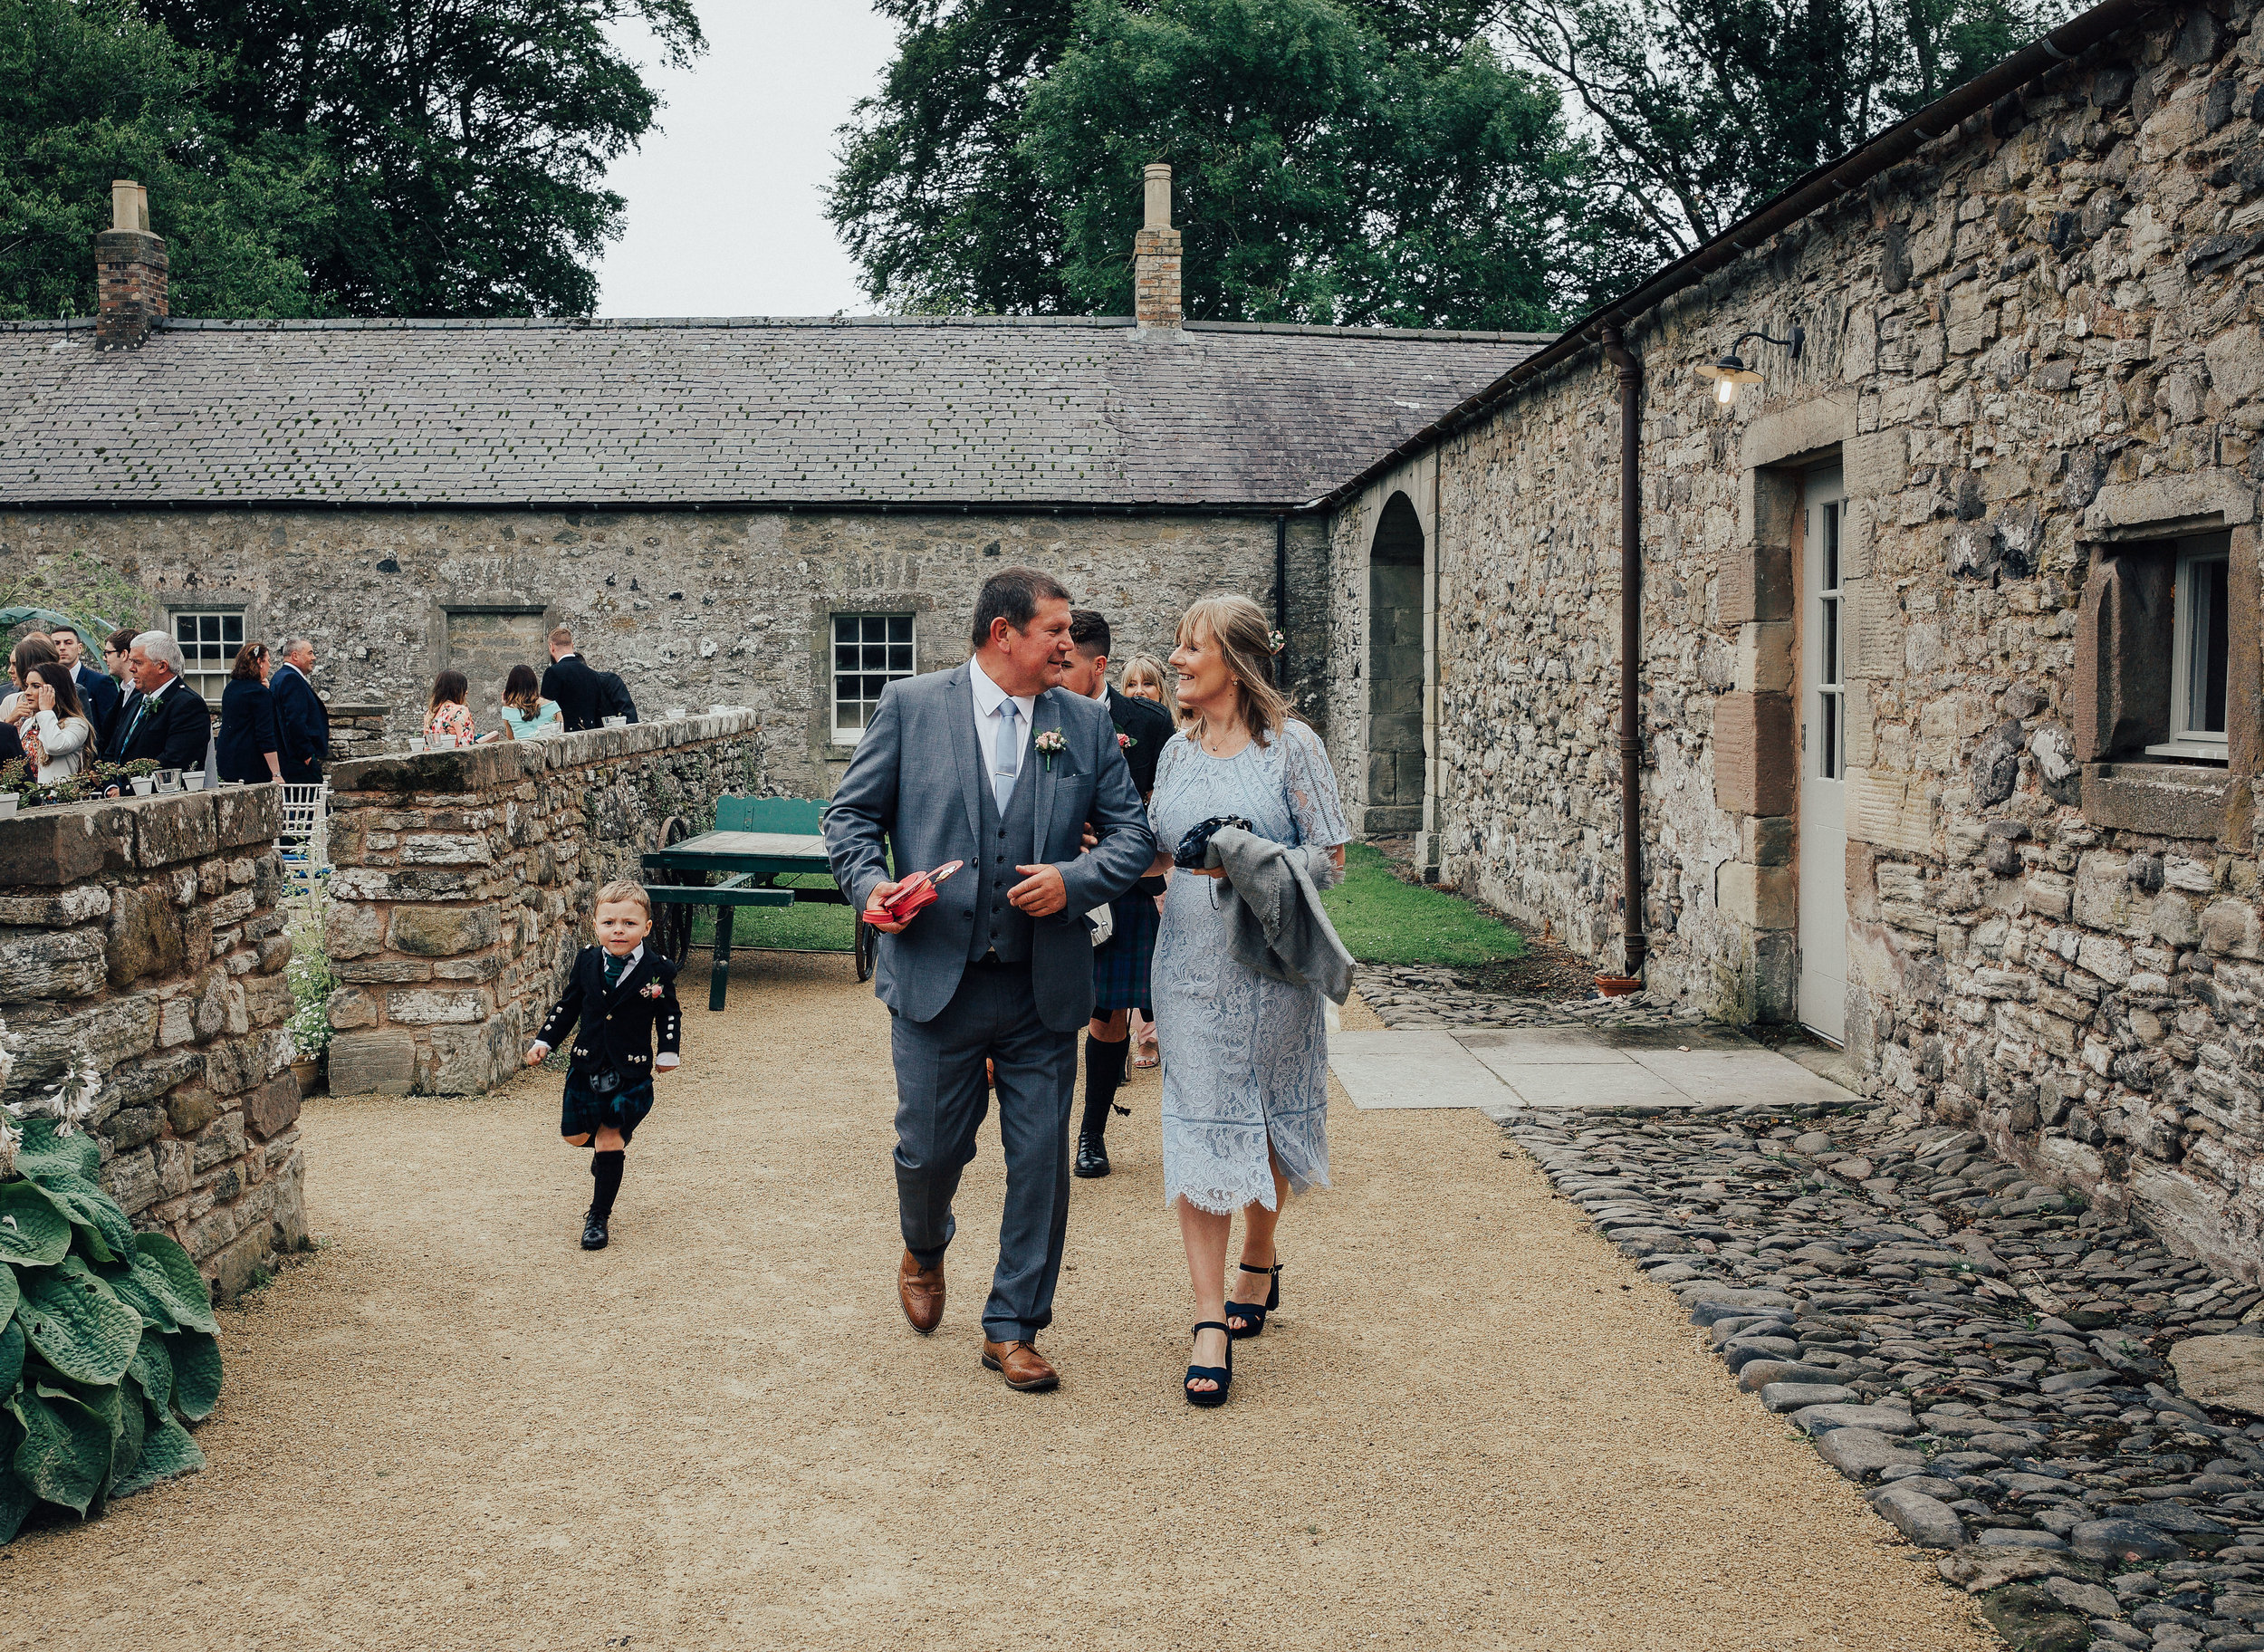 PJ_PHILLIPS_PHOTOGRAPHY_EDINBURGH_WEDDERBURN_BARNS_WEDDING_EDINBURGH_WEDDING_PHOTOGRAPHER_80.jpg